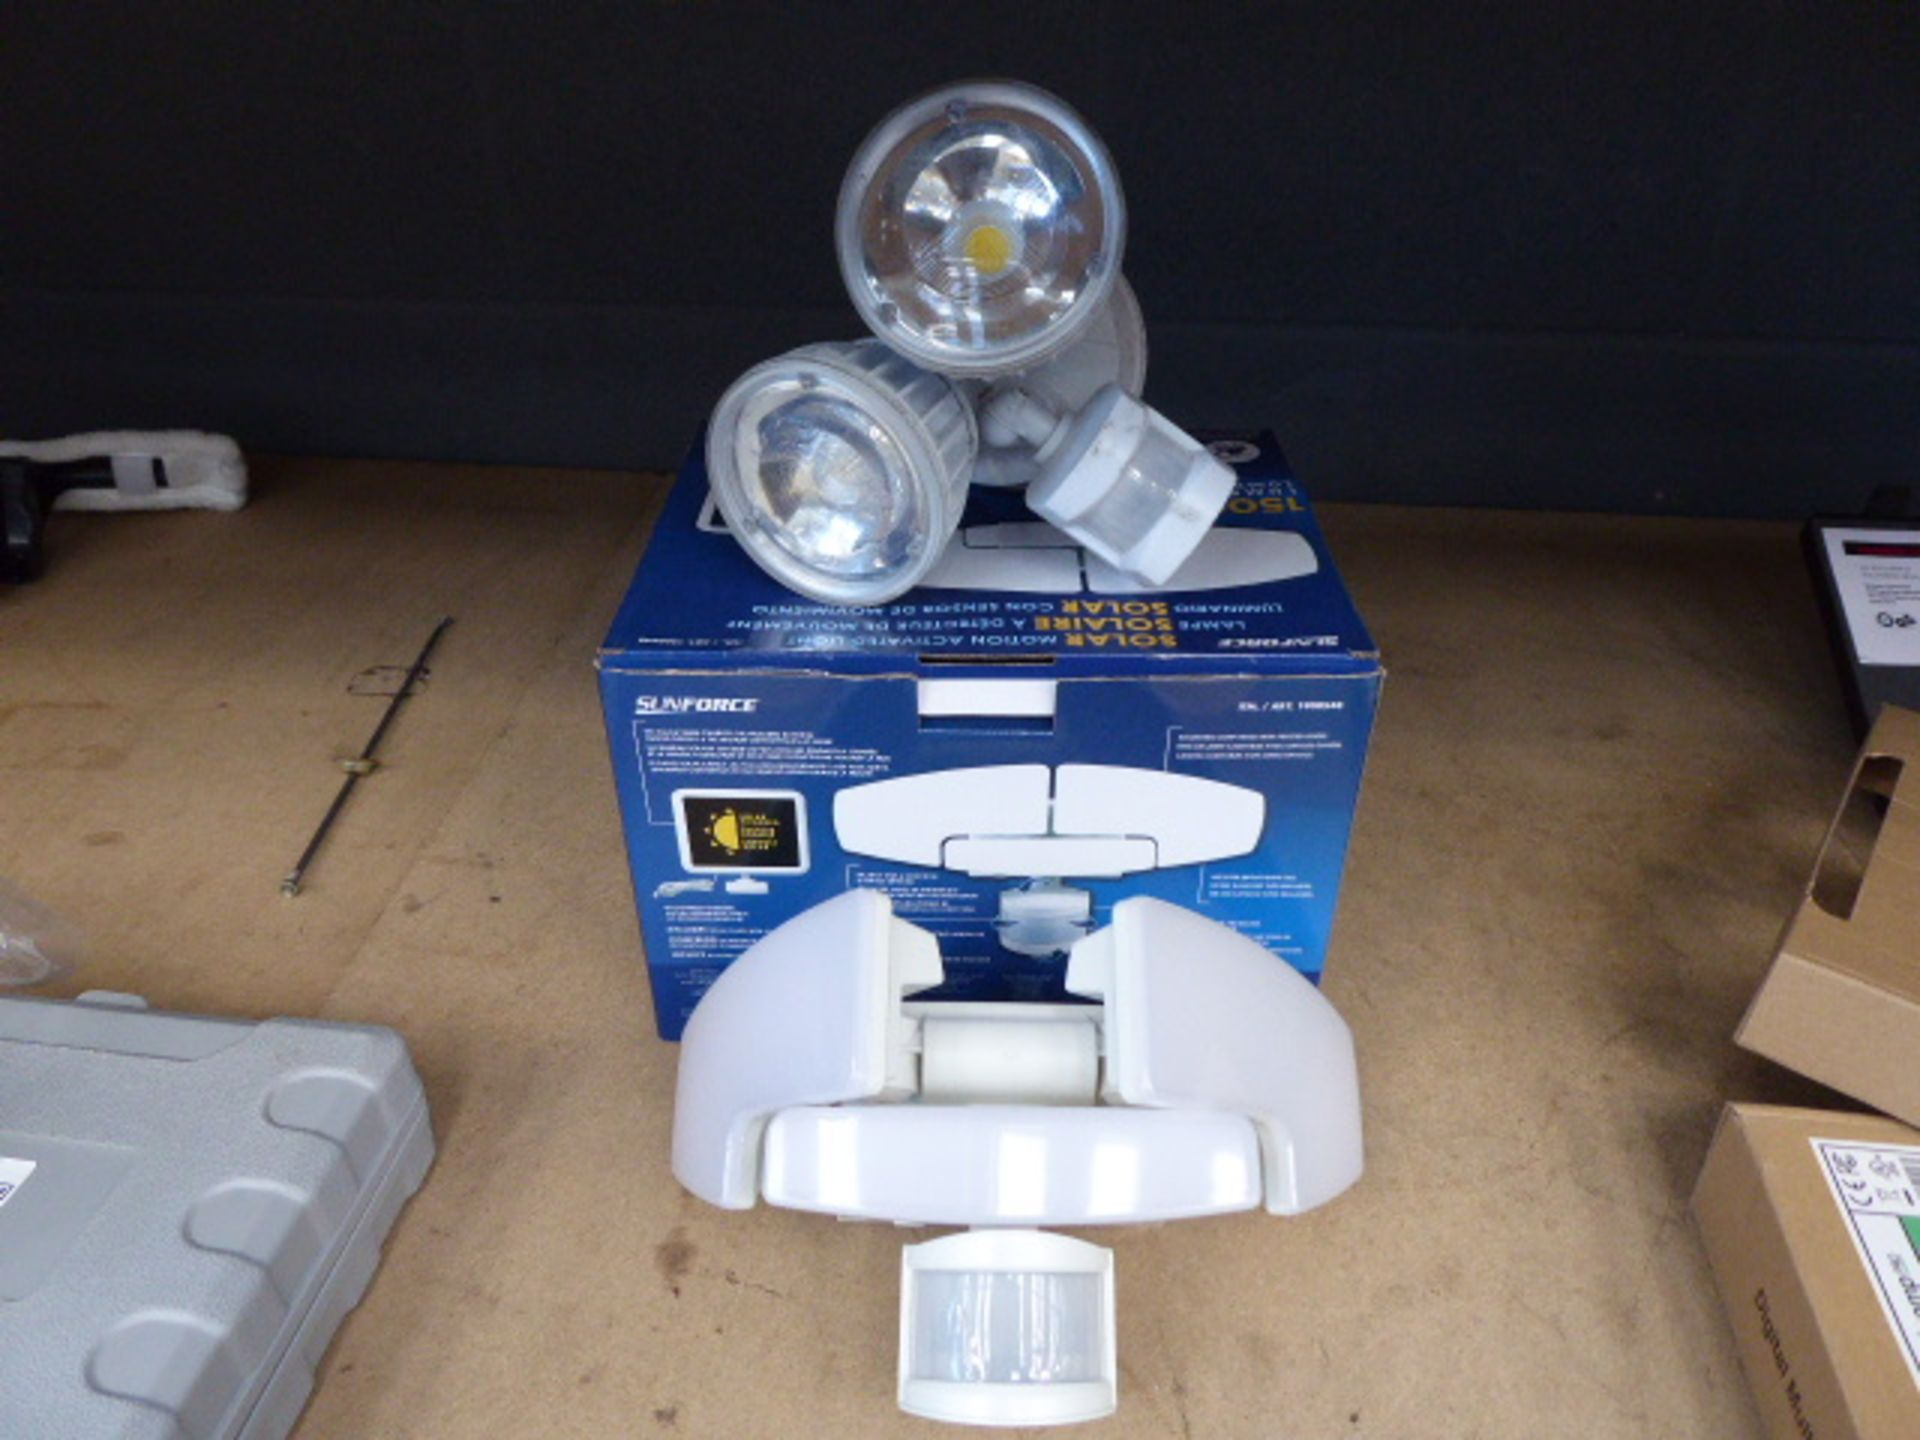 2 solar motion lights (1 boxed, 1 unboxed)